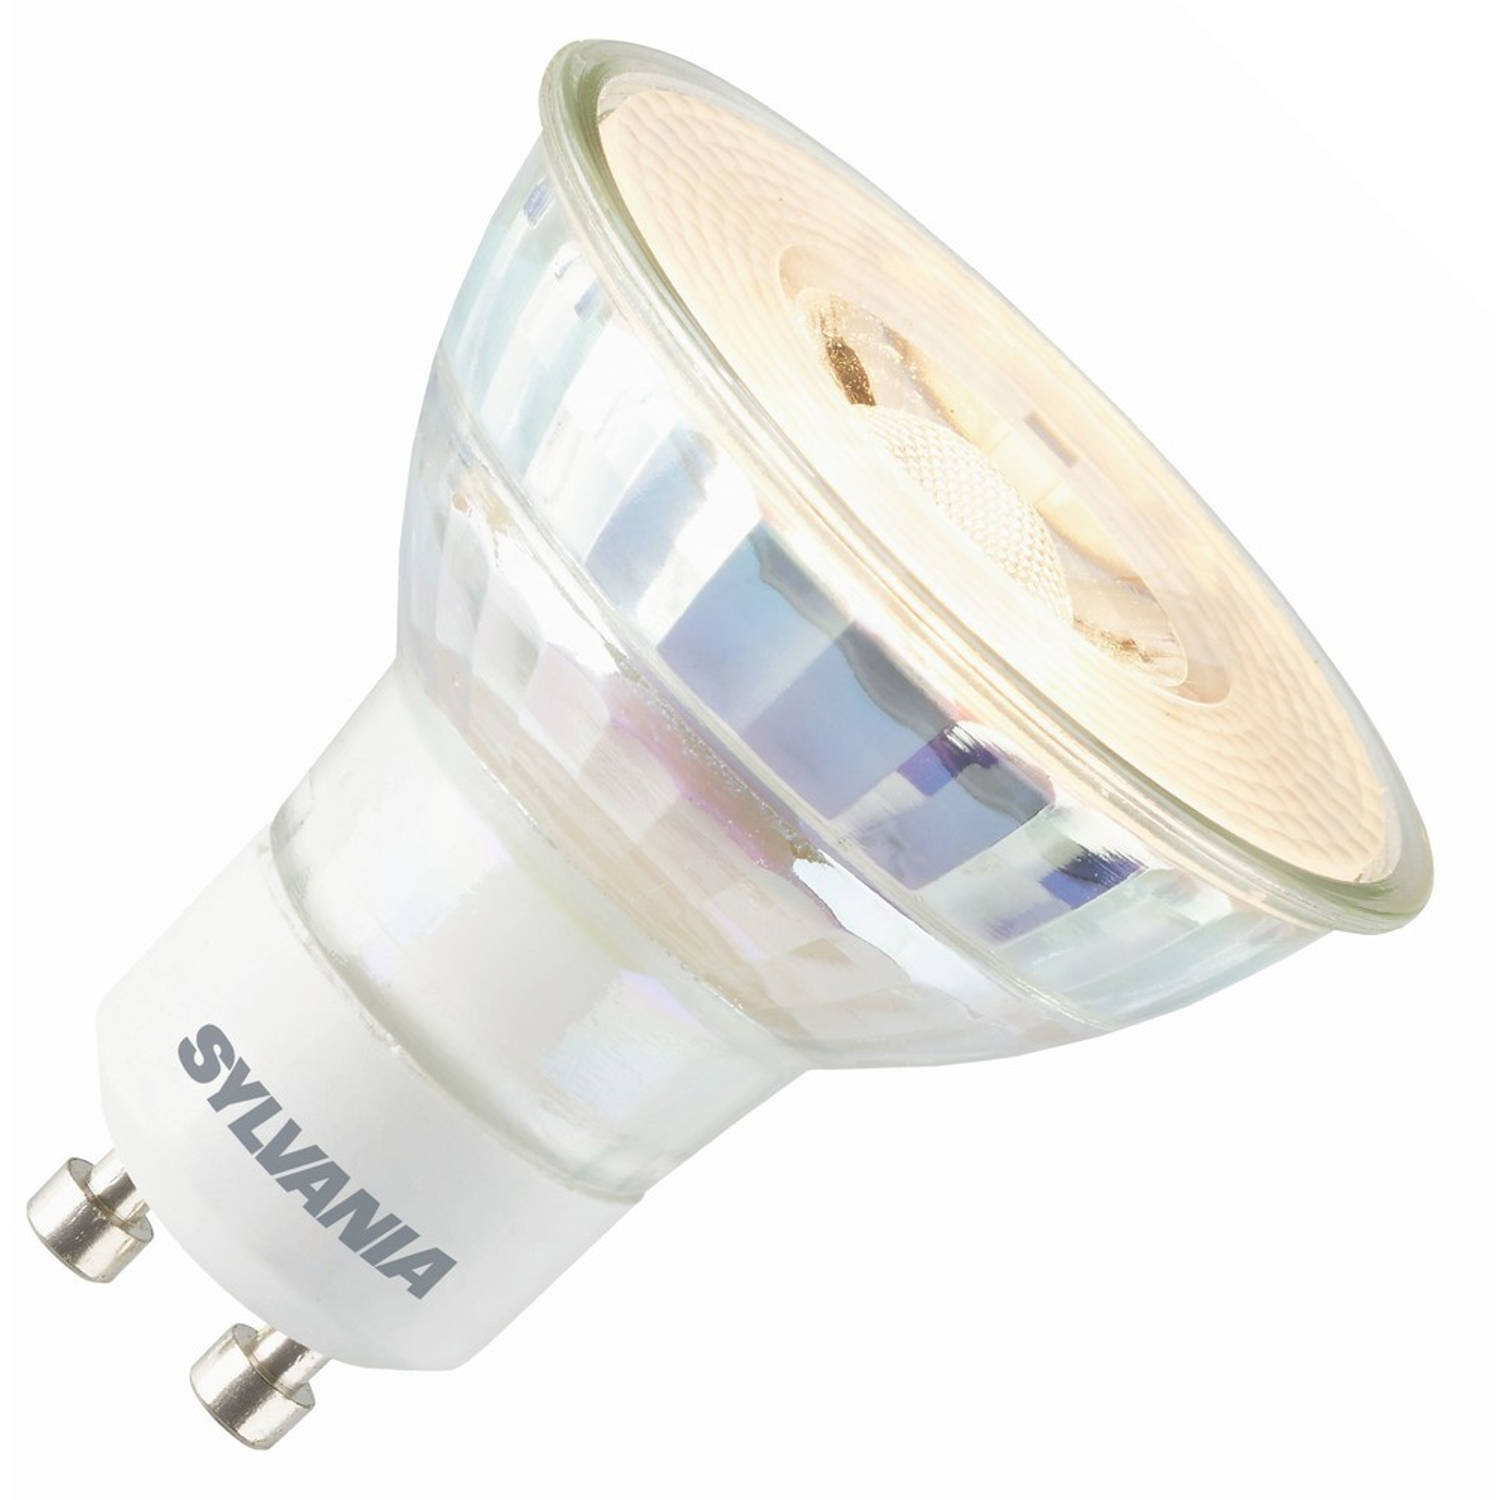 Sylvania led reflector 230v 3,3w (vervangt 25w) gu10 50mm 3000 warm-wit